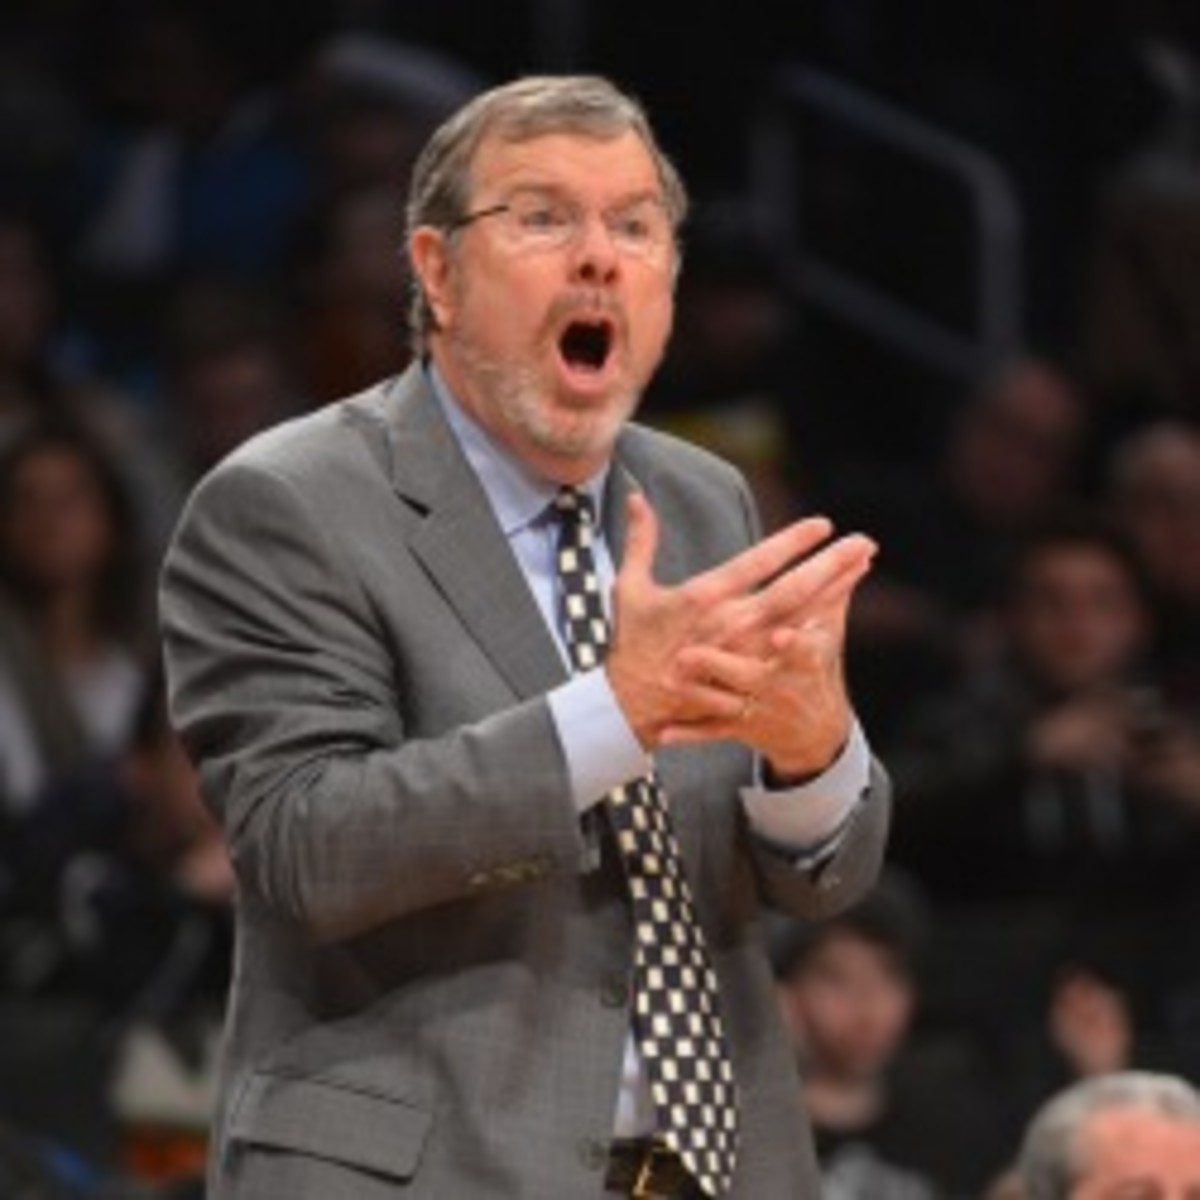 Nets GM Billy King says interim coach P.J. Carlesimo has the team's support. (Jesse D. Garrabrant/NBA/Getty Images)